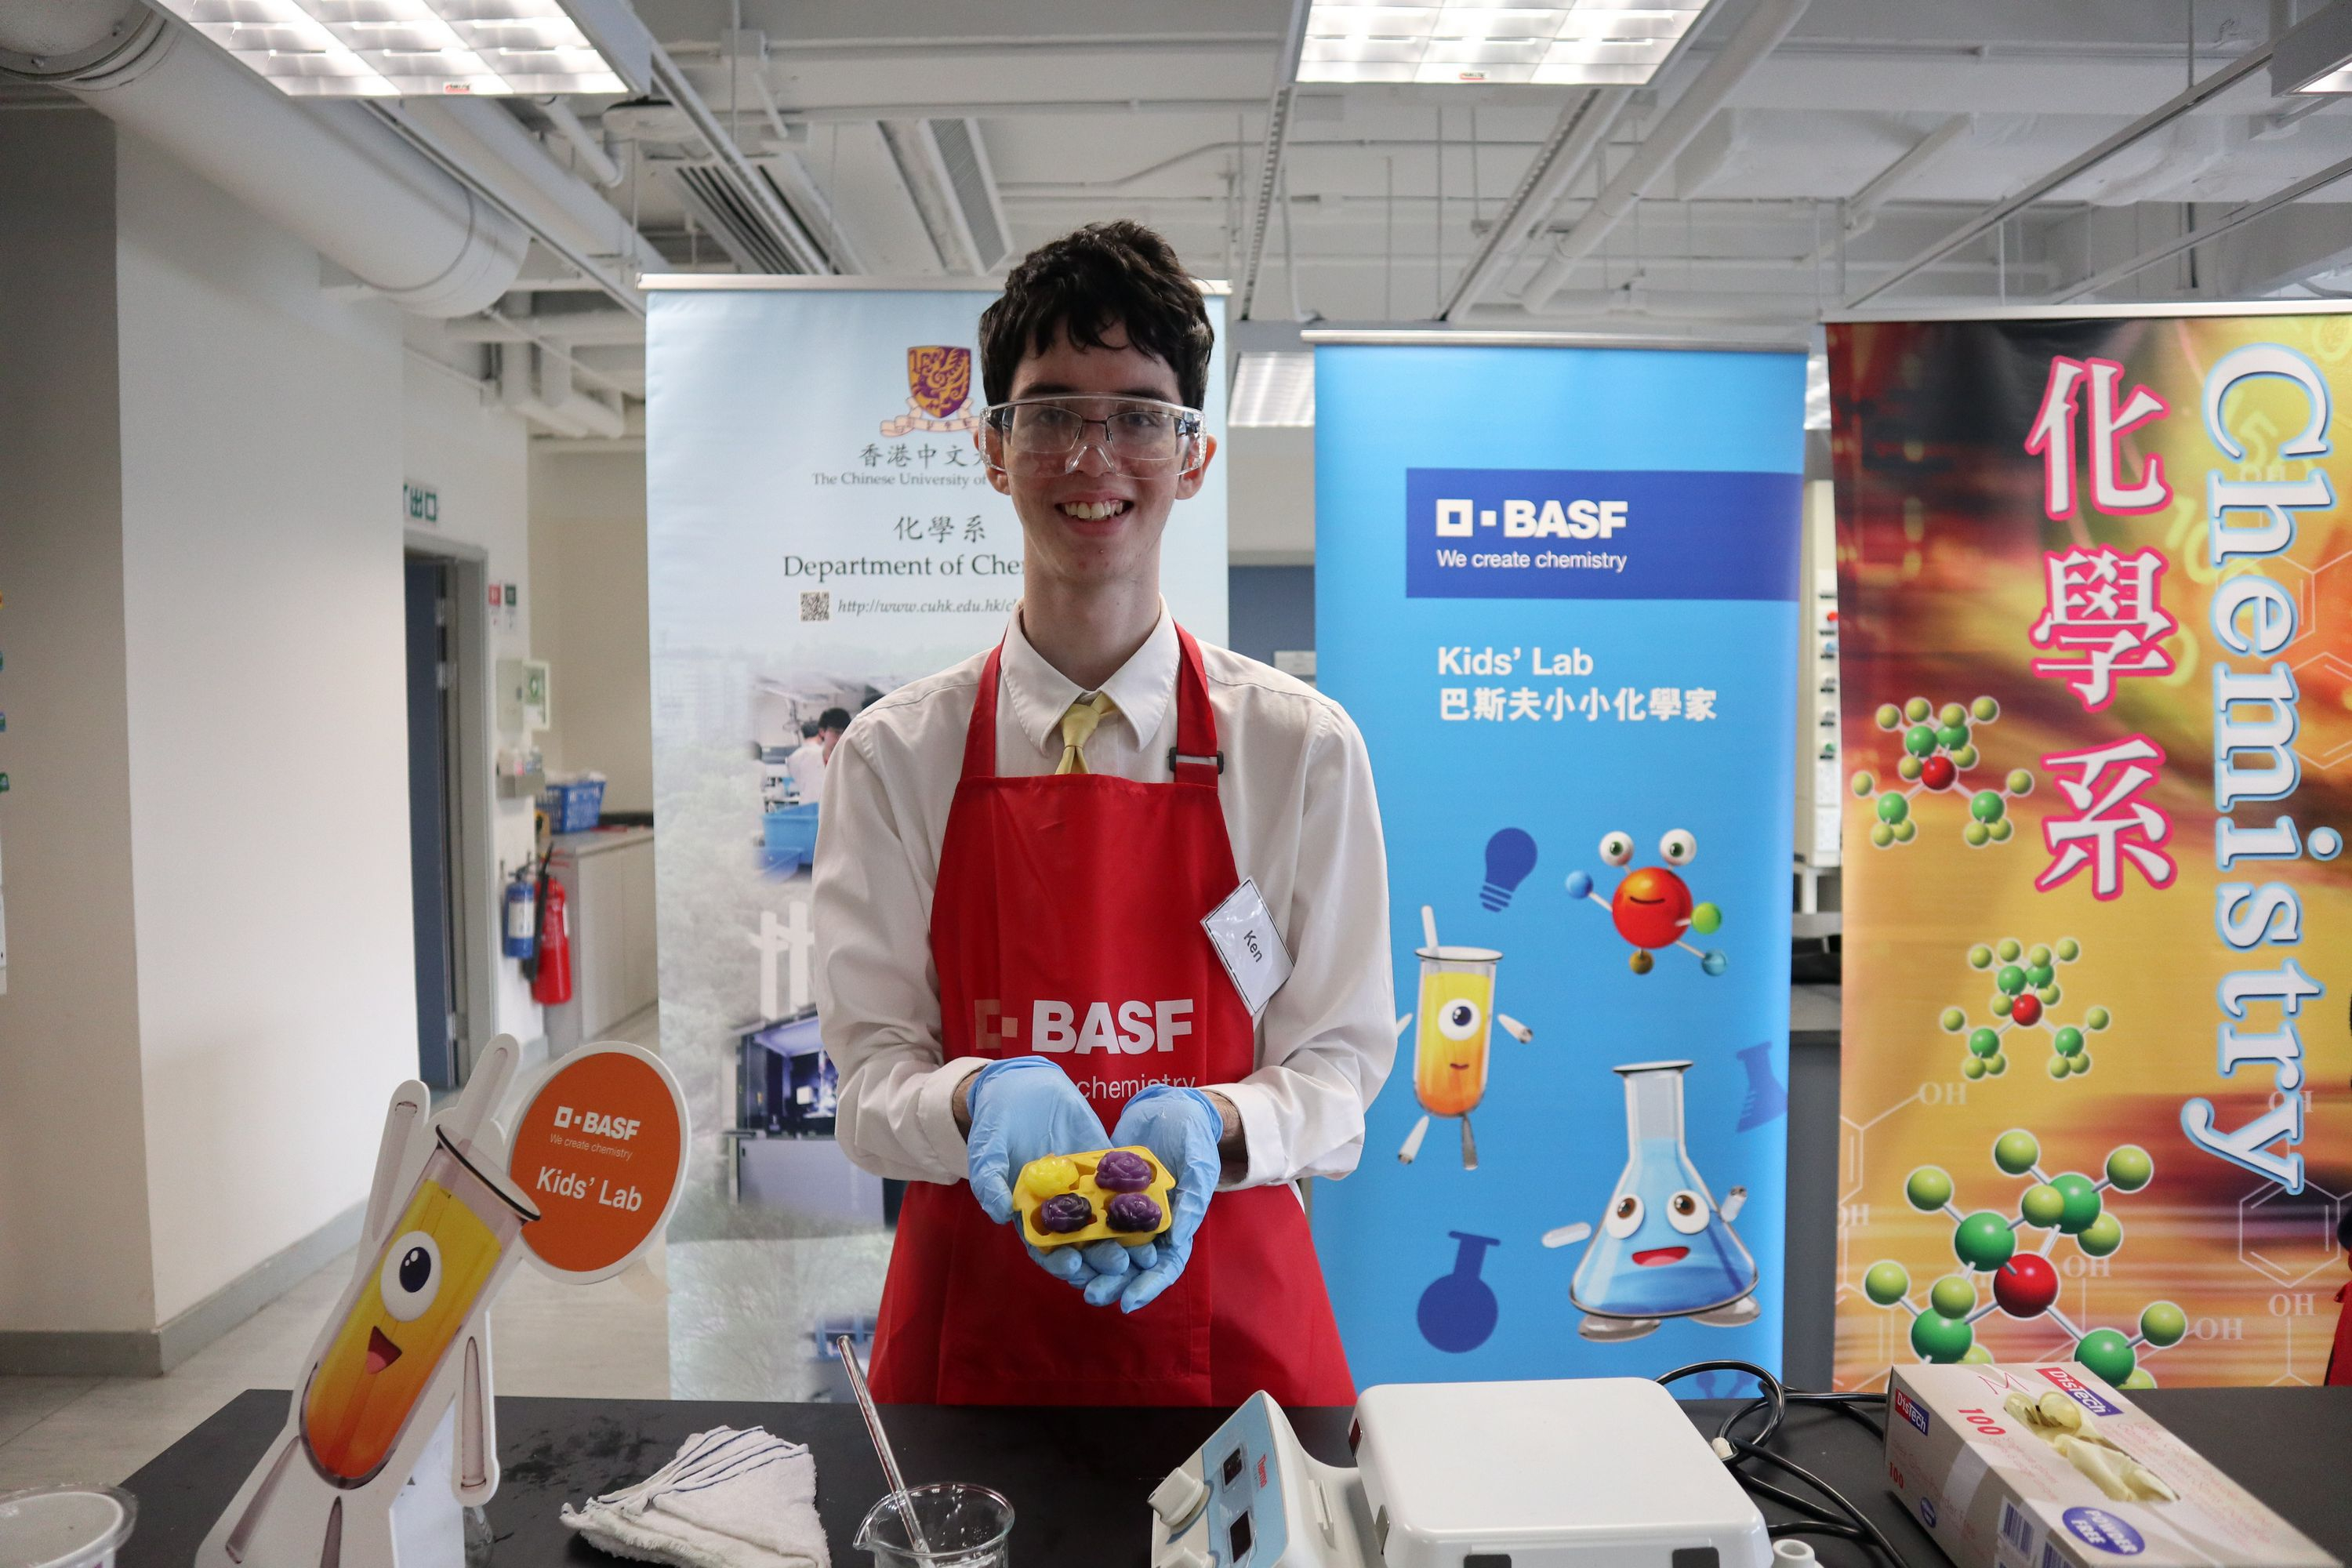 """With their experiment """"Plastato"""", the first runners-up Ken Hilton and Austin Tan from HKUGA College demonstrated how they make bio-degradable """"plastic"""" from potatoes and vinegar to replace disposable plastic items, such as utensils."""